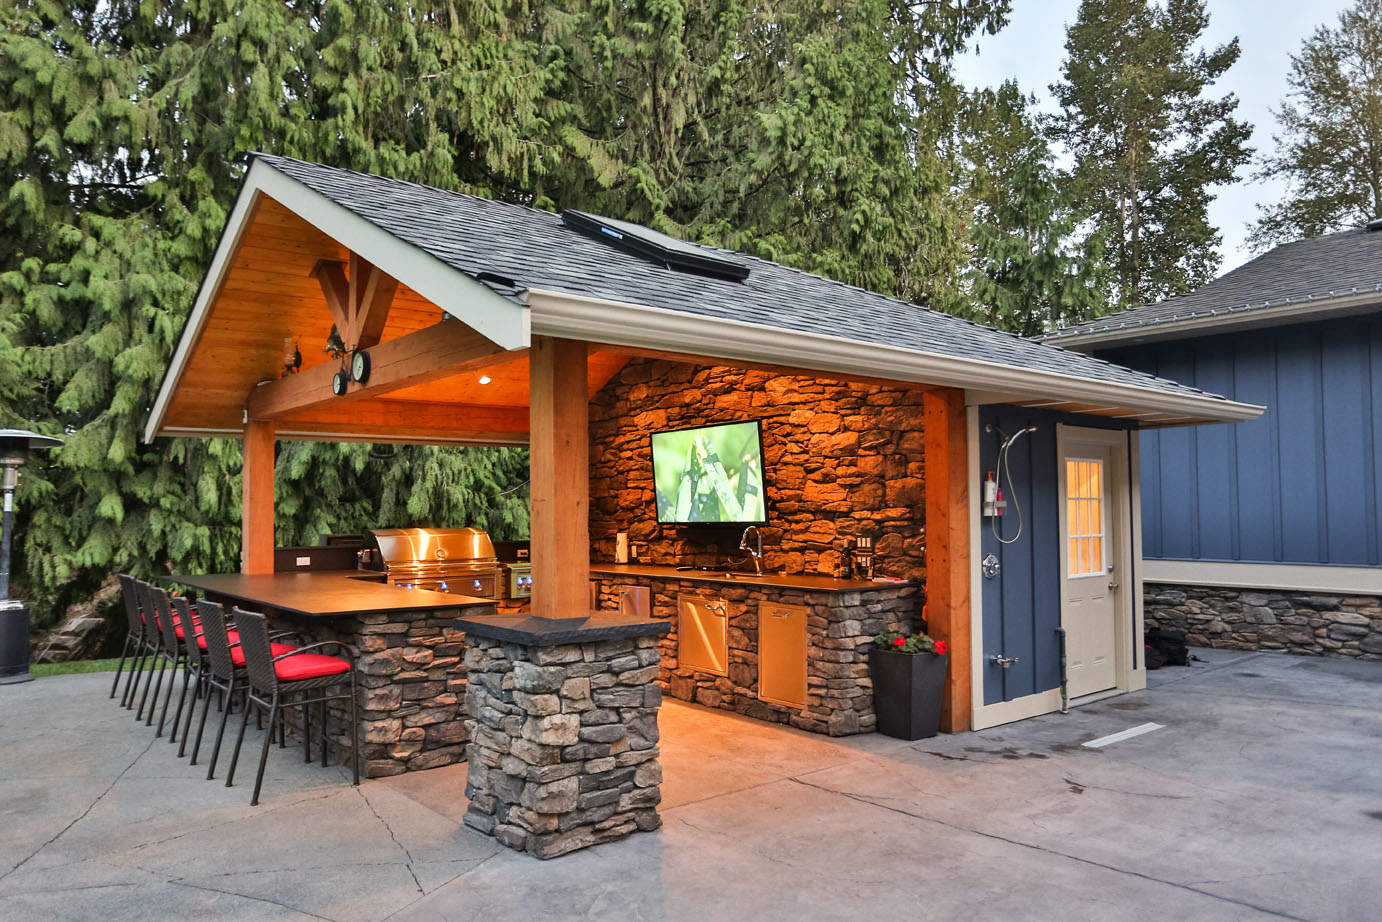 Outdoor Kitchen Design & Installation-McKinney TX Professional Landscapers & Outdoor Living Designs-We offer Landscape Design, Outdoor Patios & Pergolas, Outdoor Living Spaces, Stonescapes, Residential & Commercial Landscaping, Irrigation Installation & Repairs, Drainage Systems, Landscape Lighting, Outdoor Living Spaces, Tree Service, Lawn Service, and more.